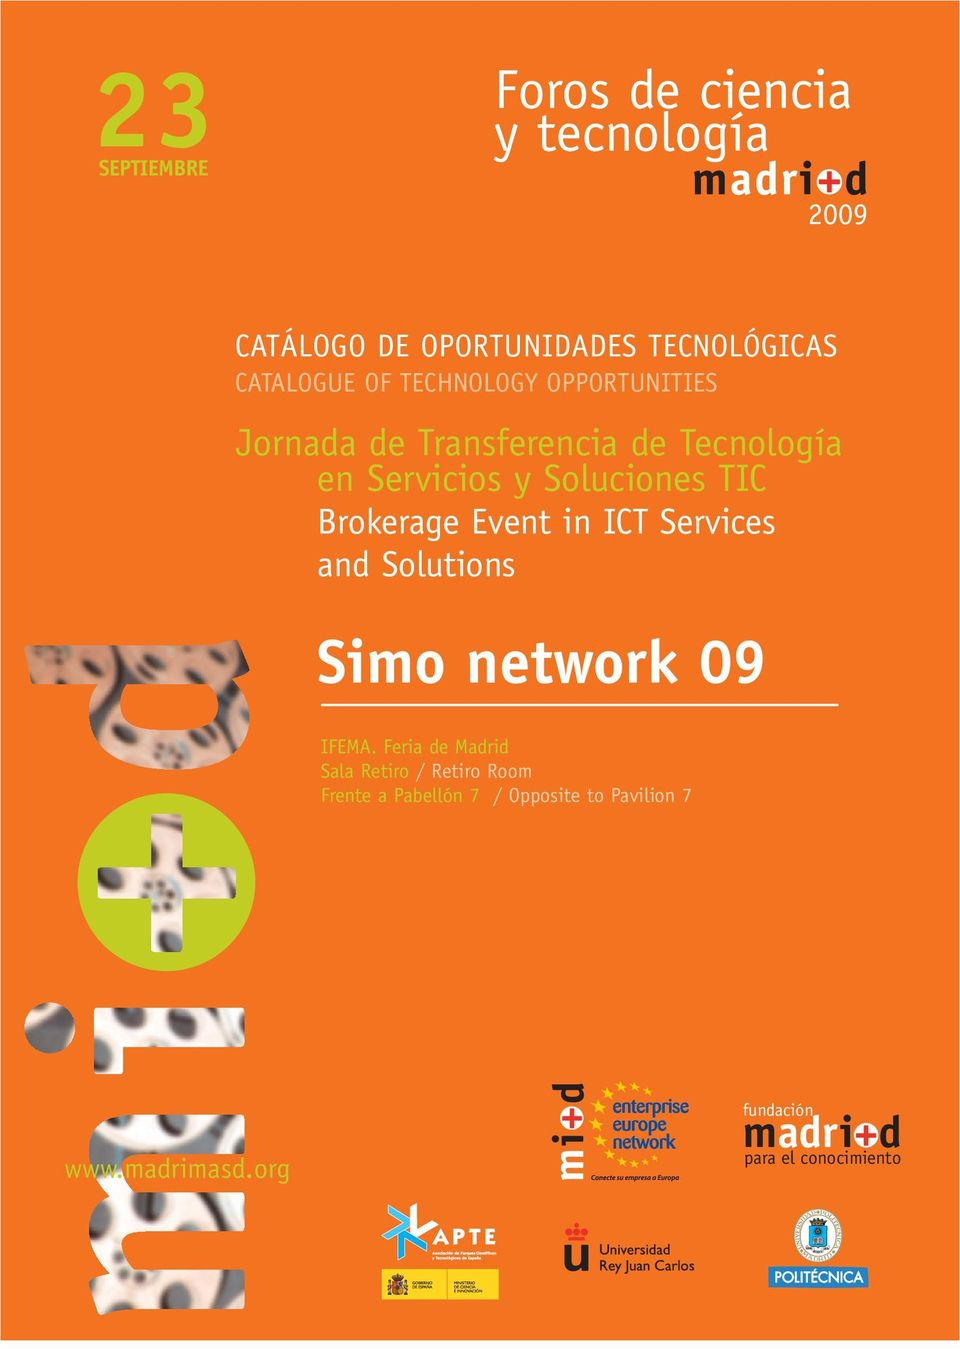 Brokerage Event in ICT Services and Solutions Simo network 09 IFEMA.